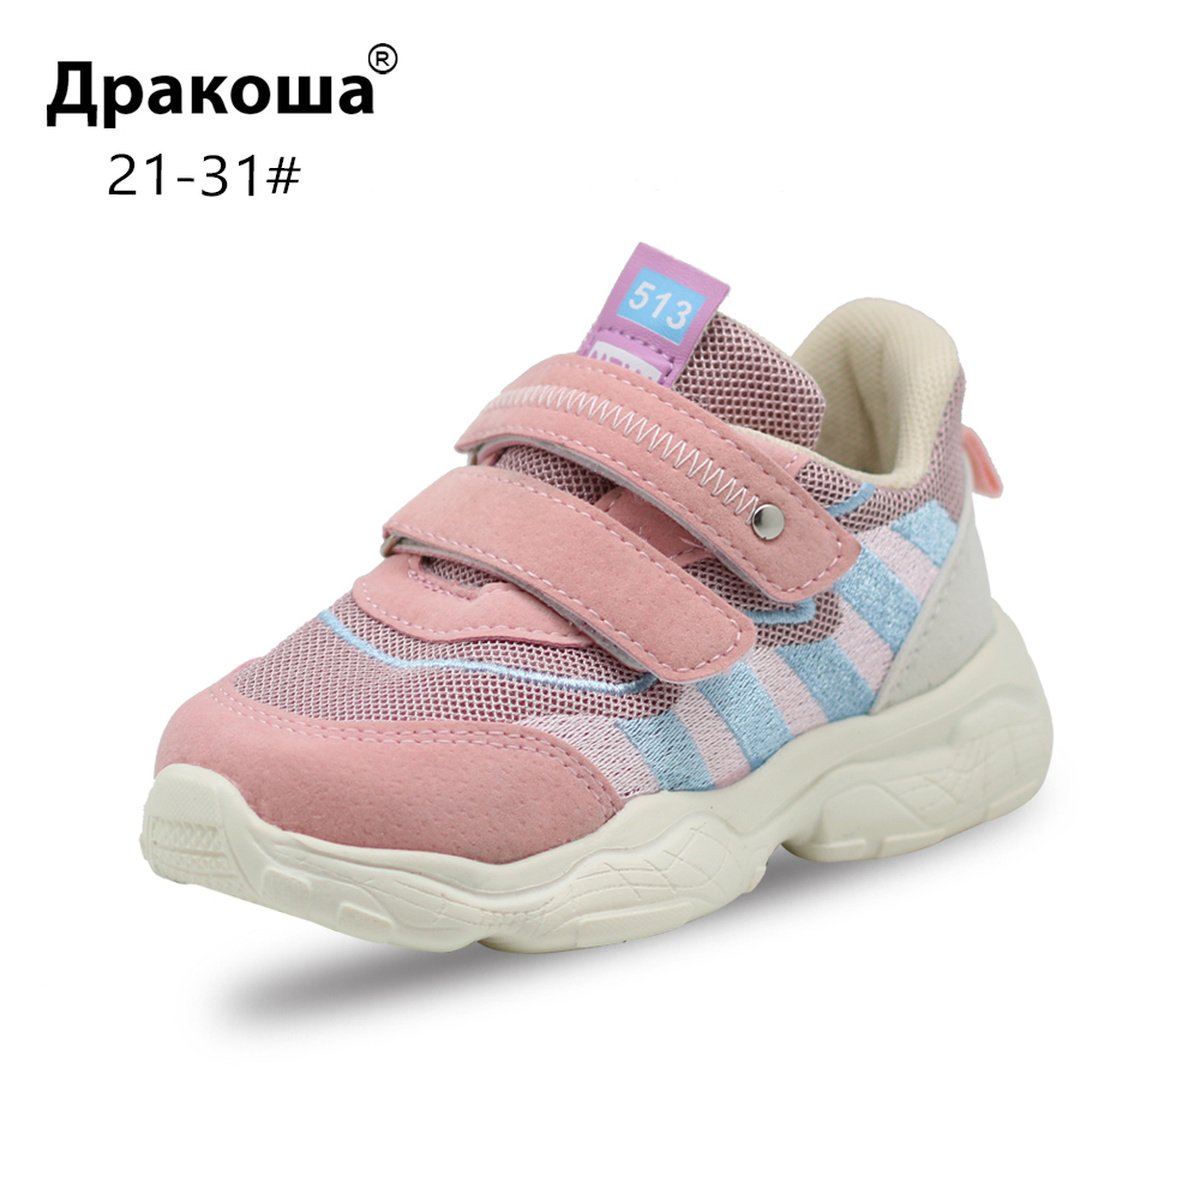 Apakowa Sneakers High Elasticity Unisex Spring Running Shoes Toddler Double Hook&Loop Sprot Sneakers For School Kids Footwear